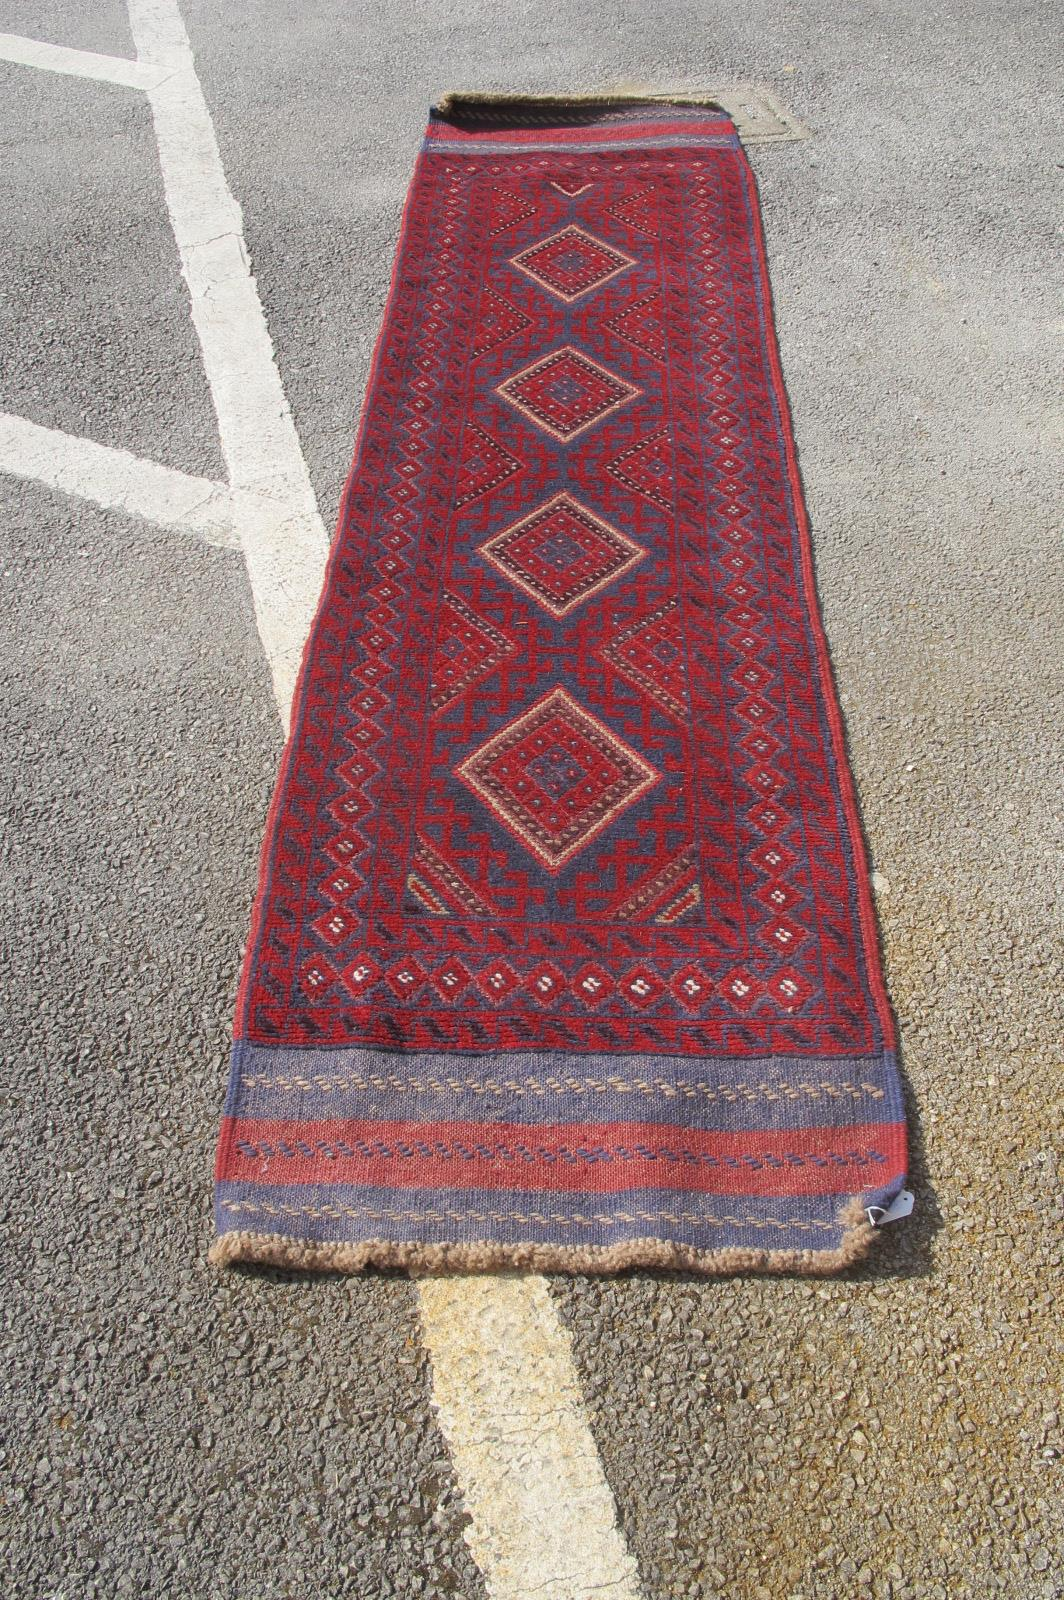 Middle Eastern Wool Runner, with four central lozenges, geometric motifs on burgundy ground, overall